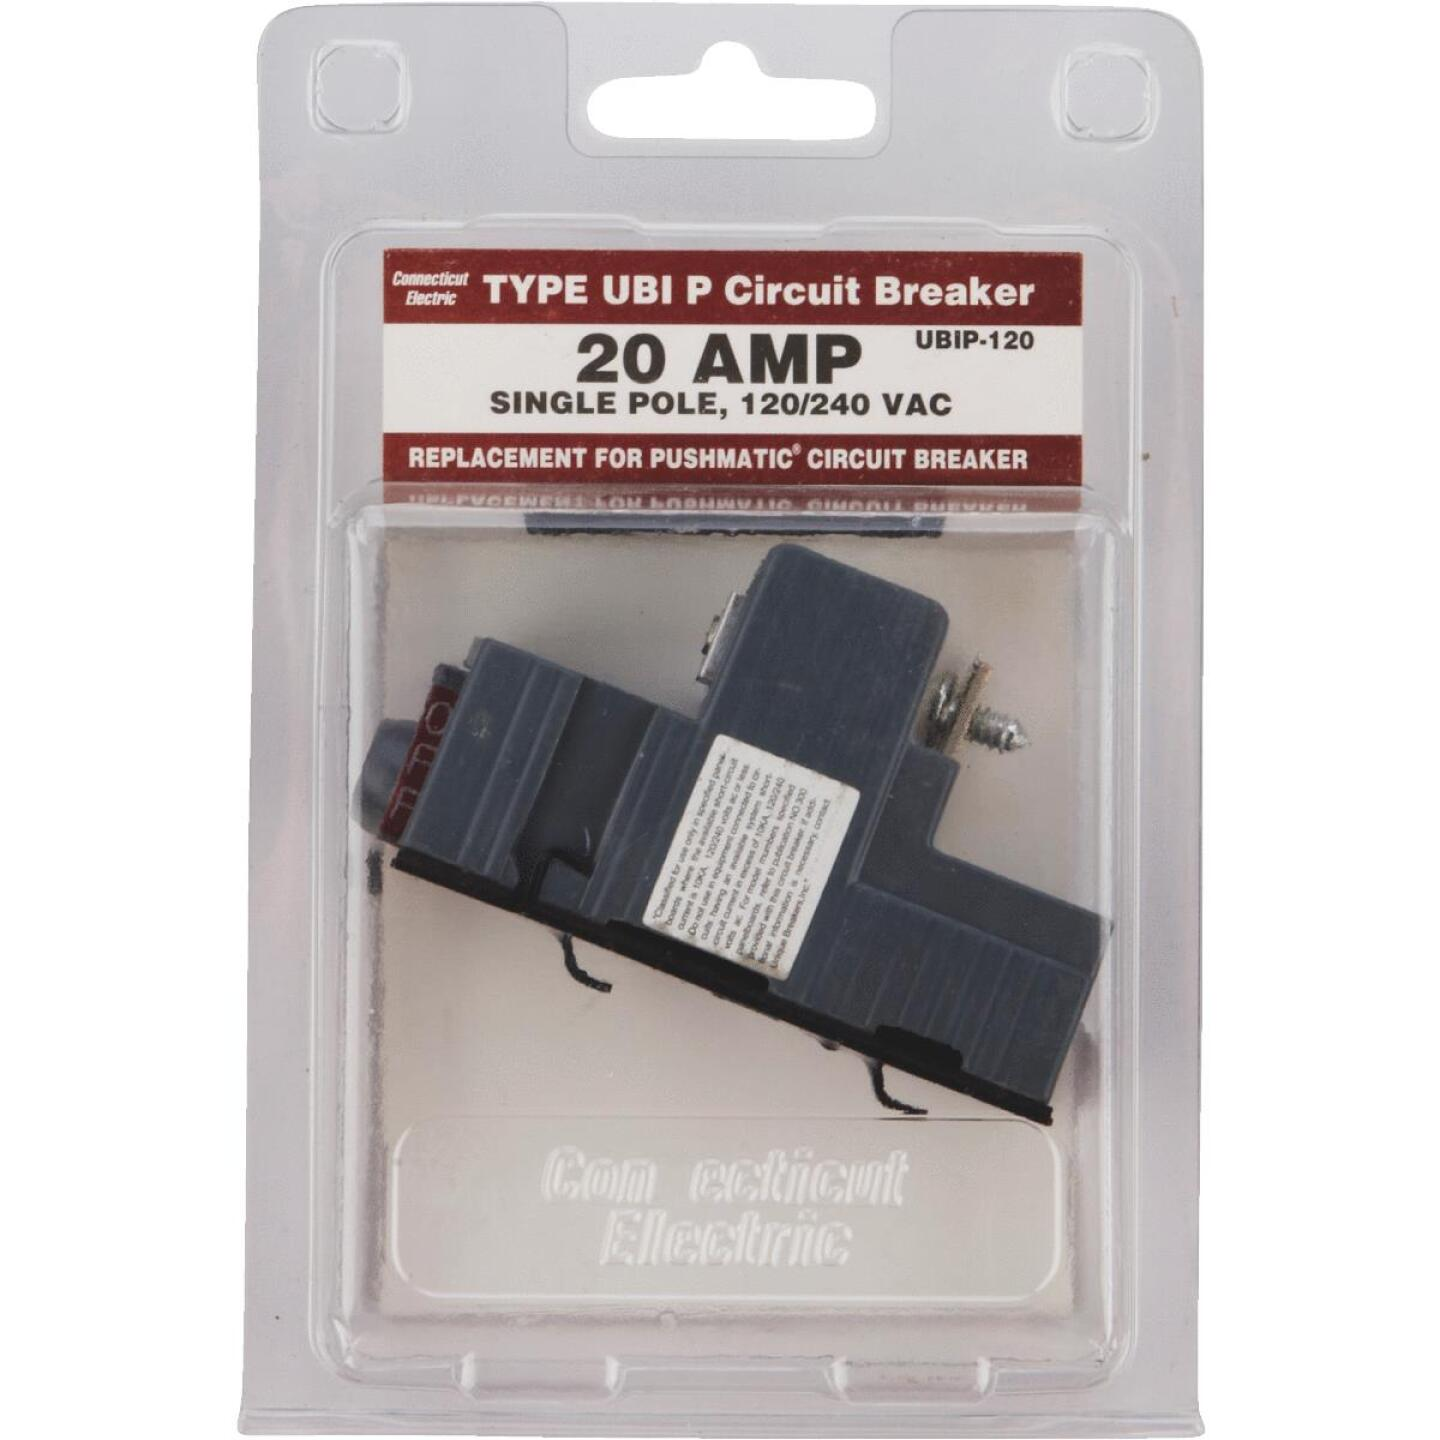 Connecticut Electric 20A Single-Pole Standard Trip Packaged Replacement Circuit Breaker For Pushmatic Image 2